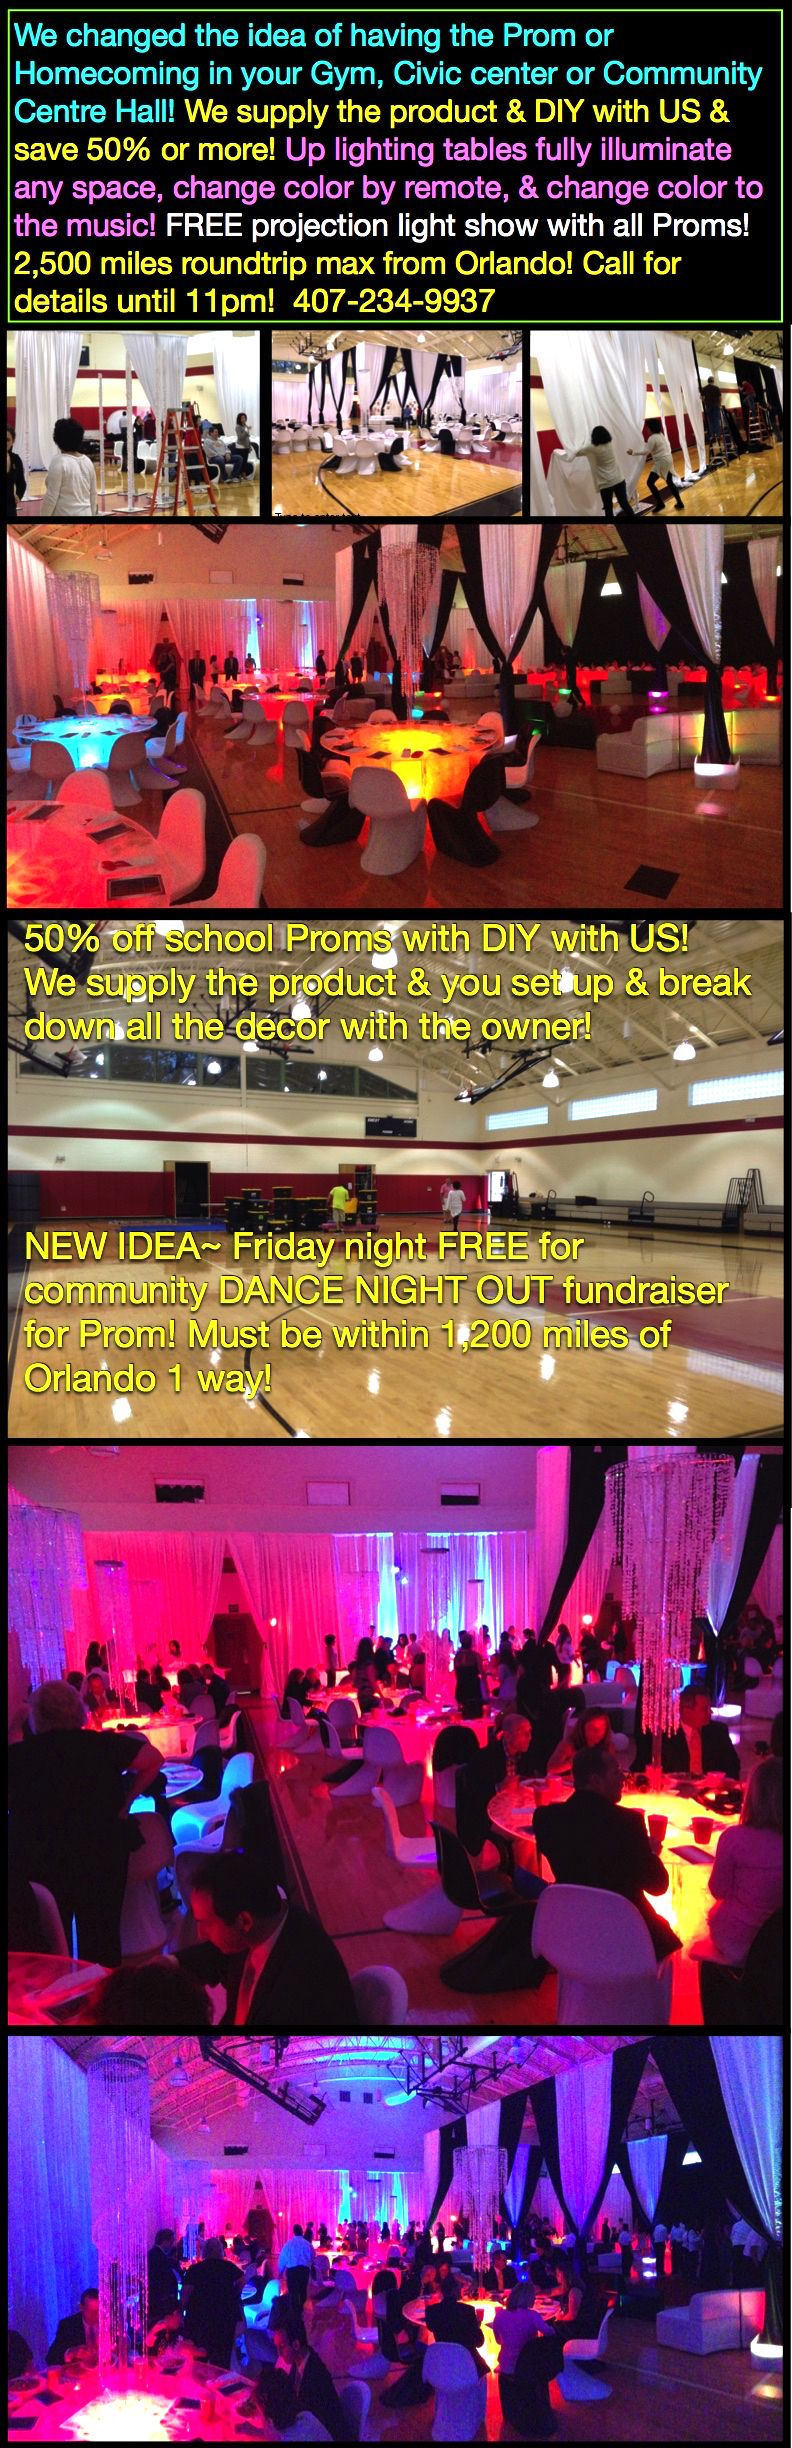 Prom 50 Off Light Up Tables Florida Traveling Decorator Here Tables Change Color By Remote To The Music 100 Fre Orlando Travel One Step Beyond Glow Table